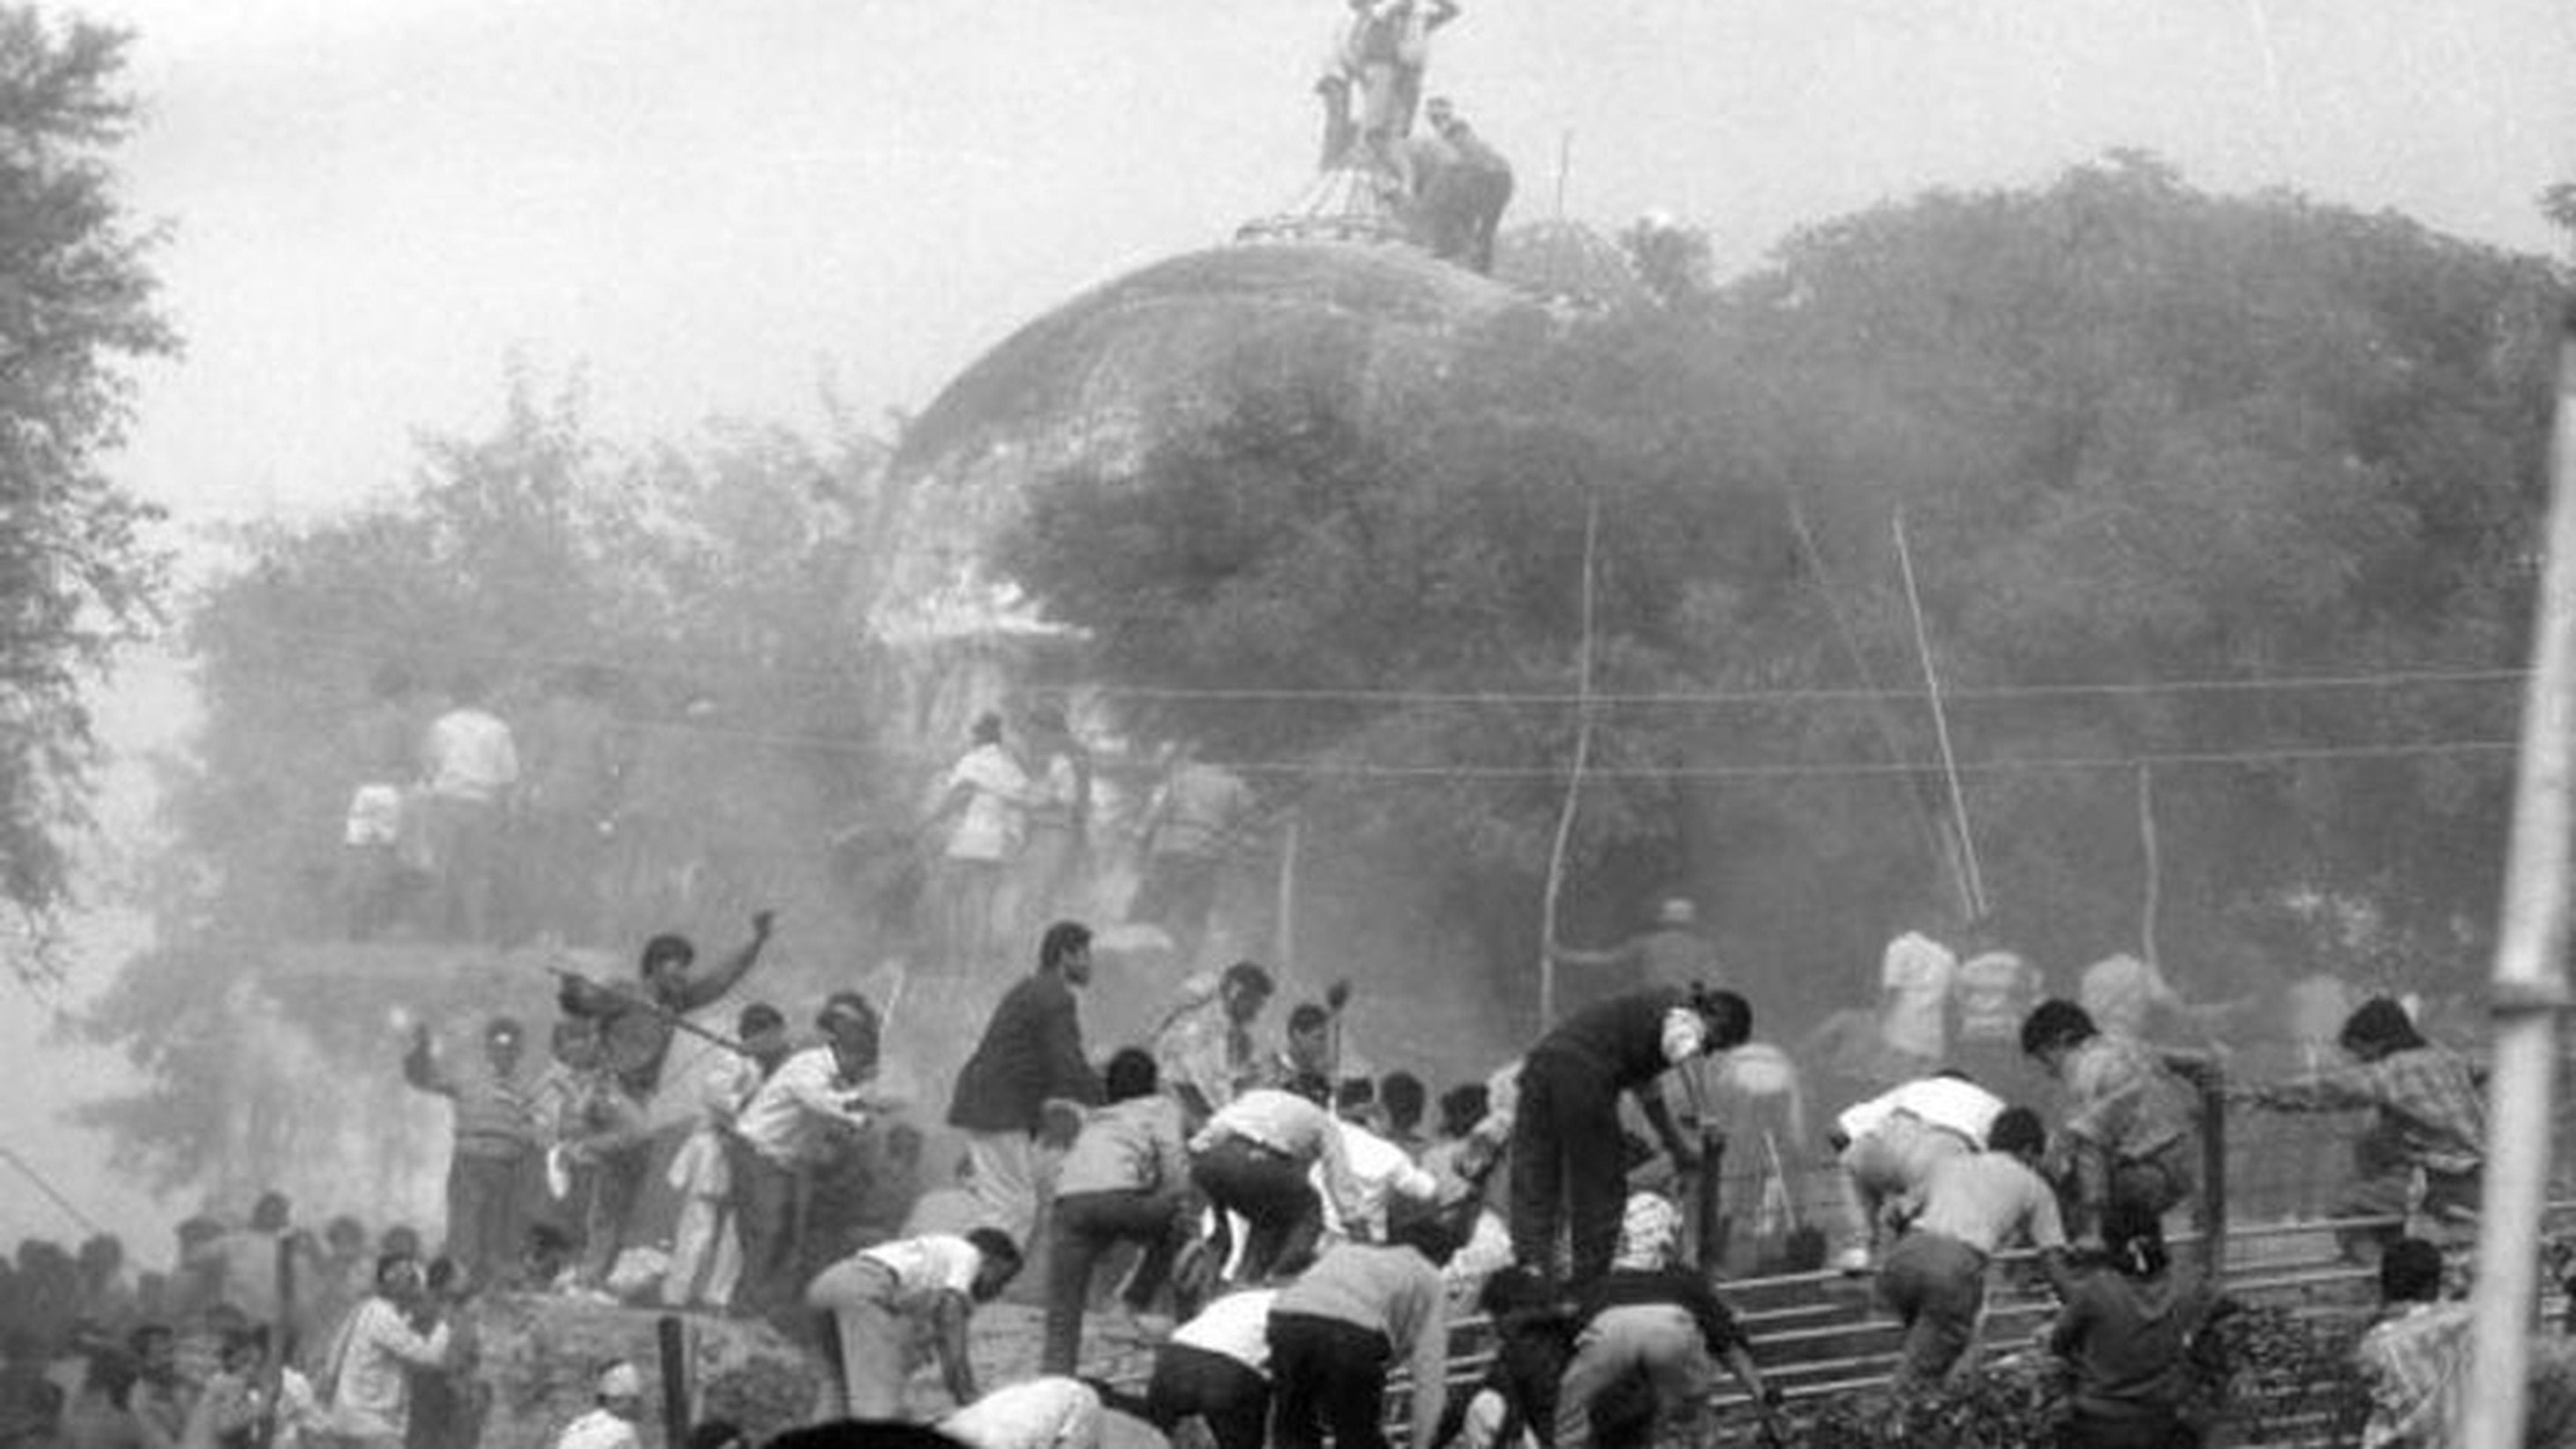 In 1992, kar sevaks demolished the Babri Masjid in Ayodhya in a bid to fulfill their wish of making a temple to Lord Ram there.